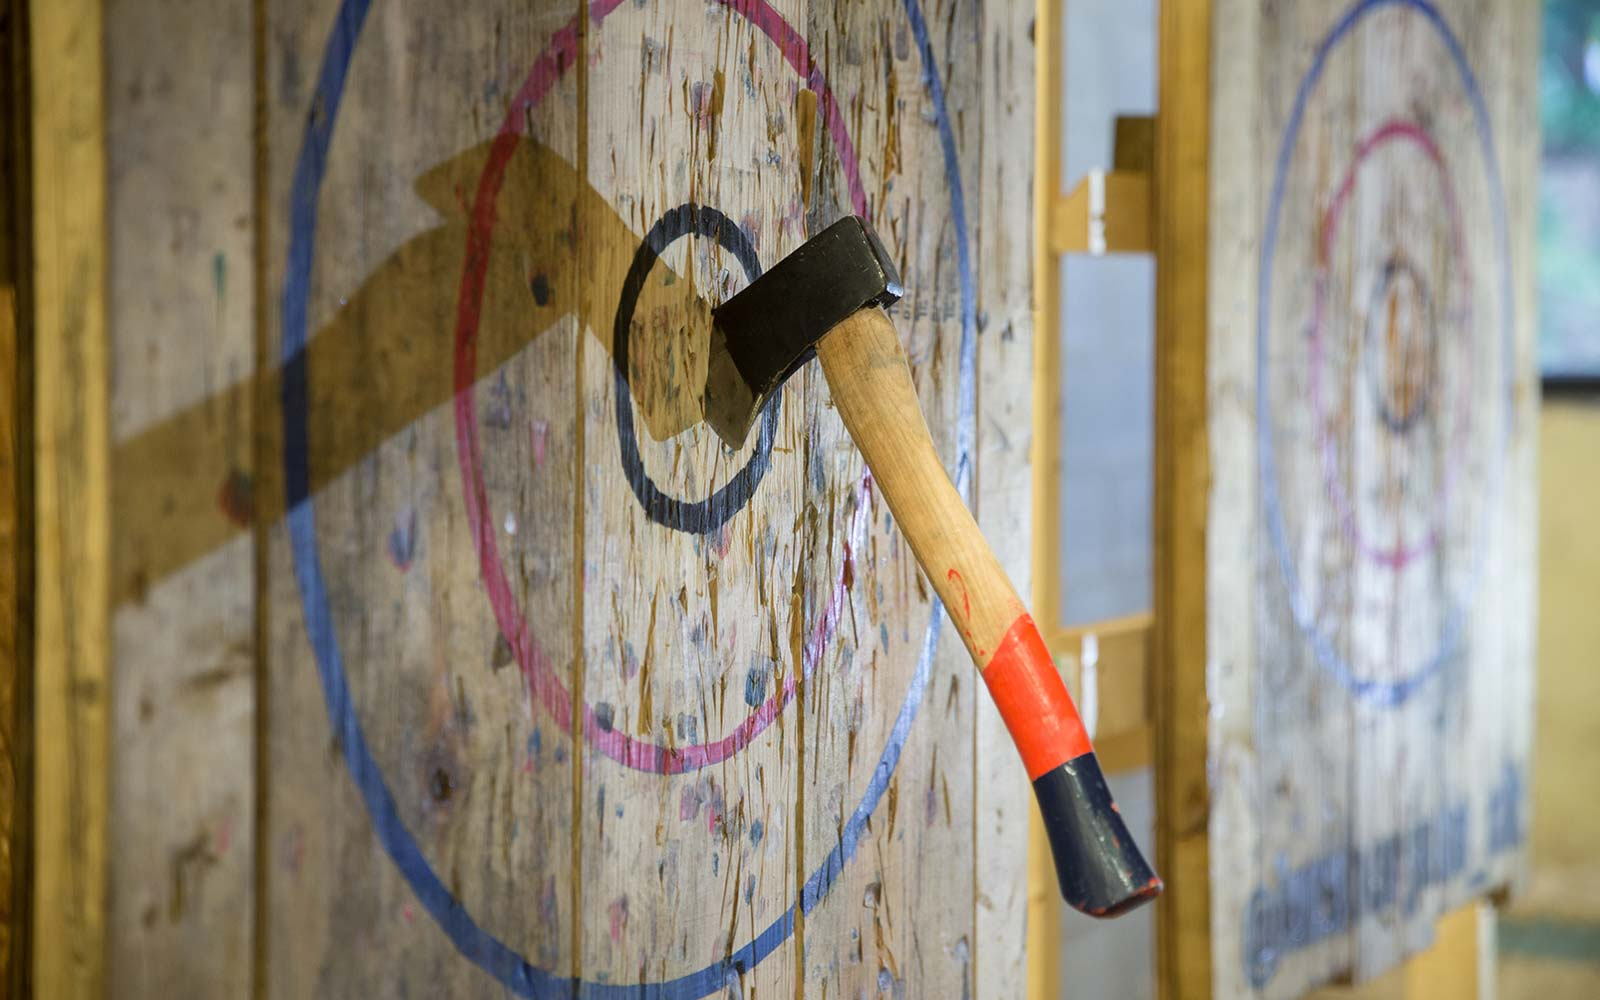 You Can Now Try Axe-throwing at These Bars